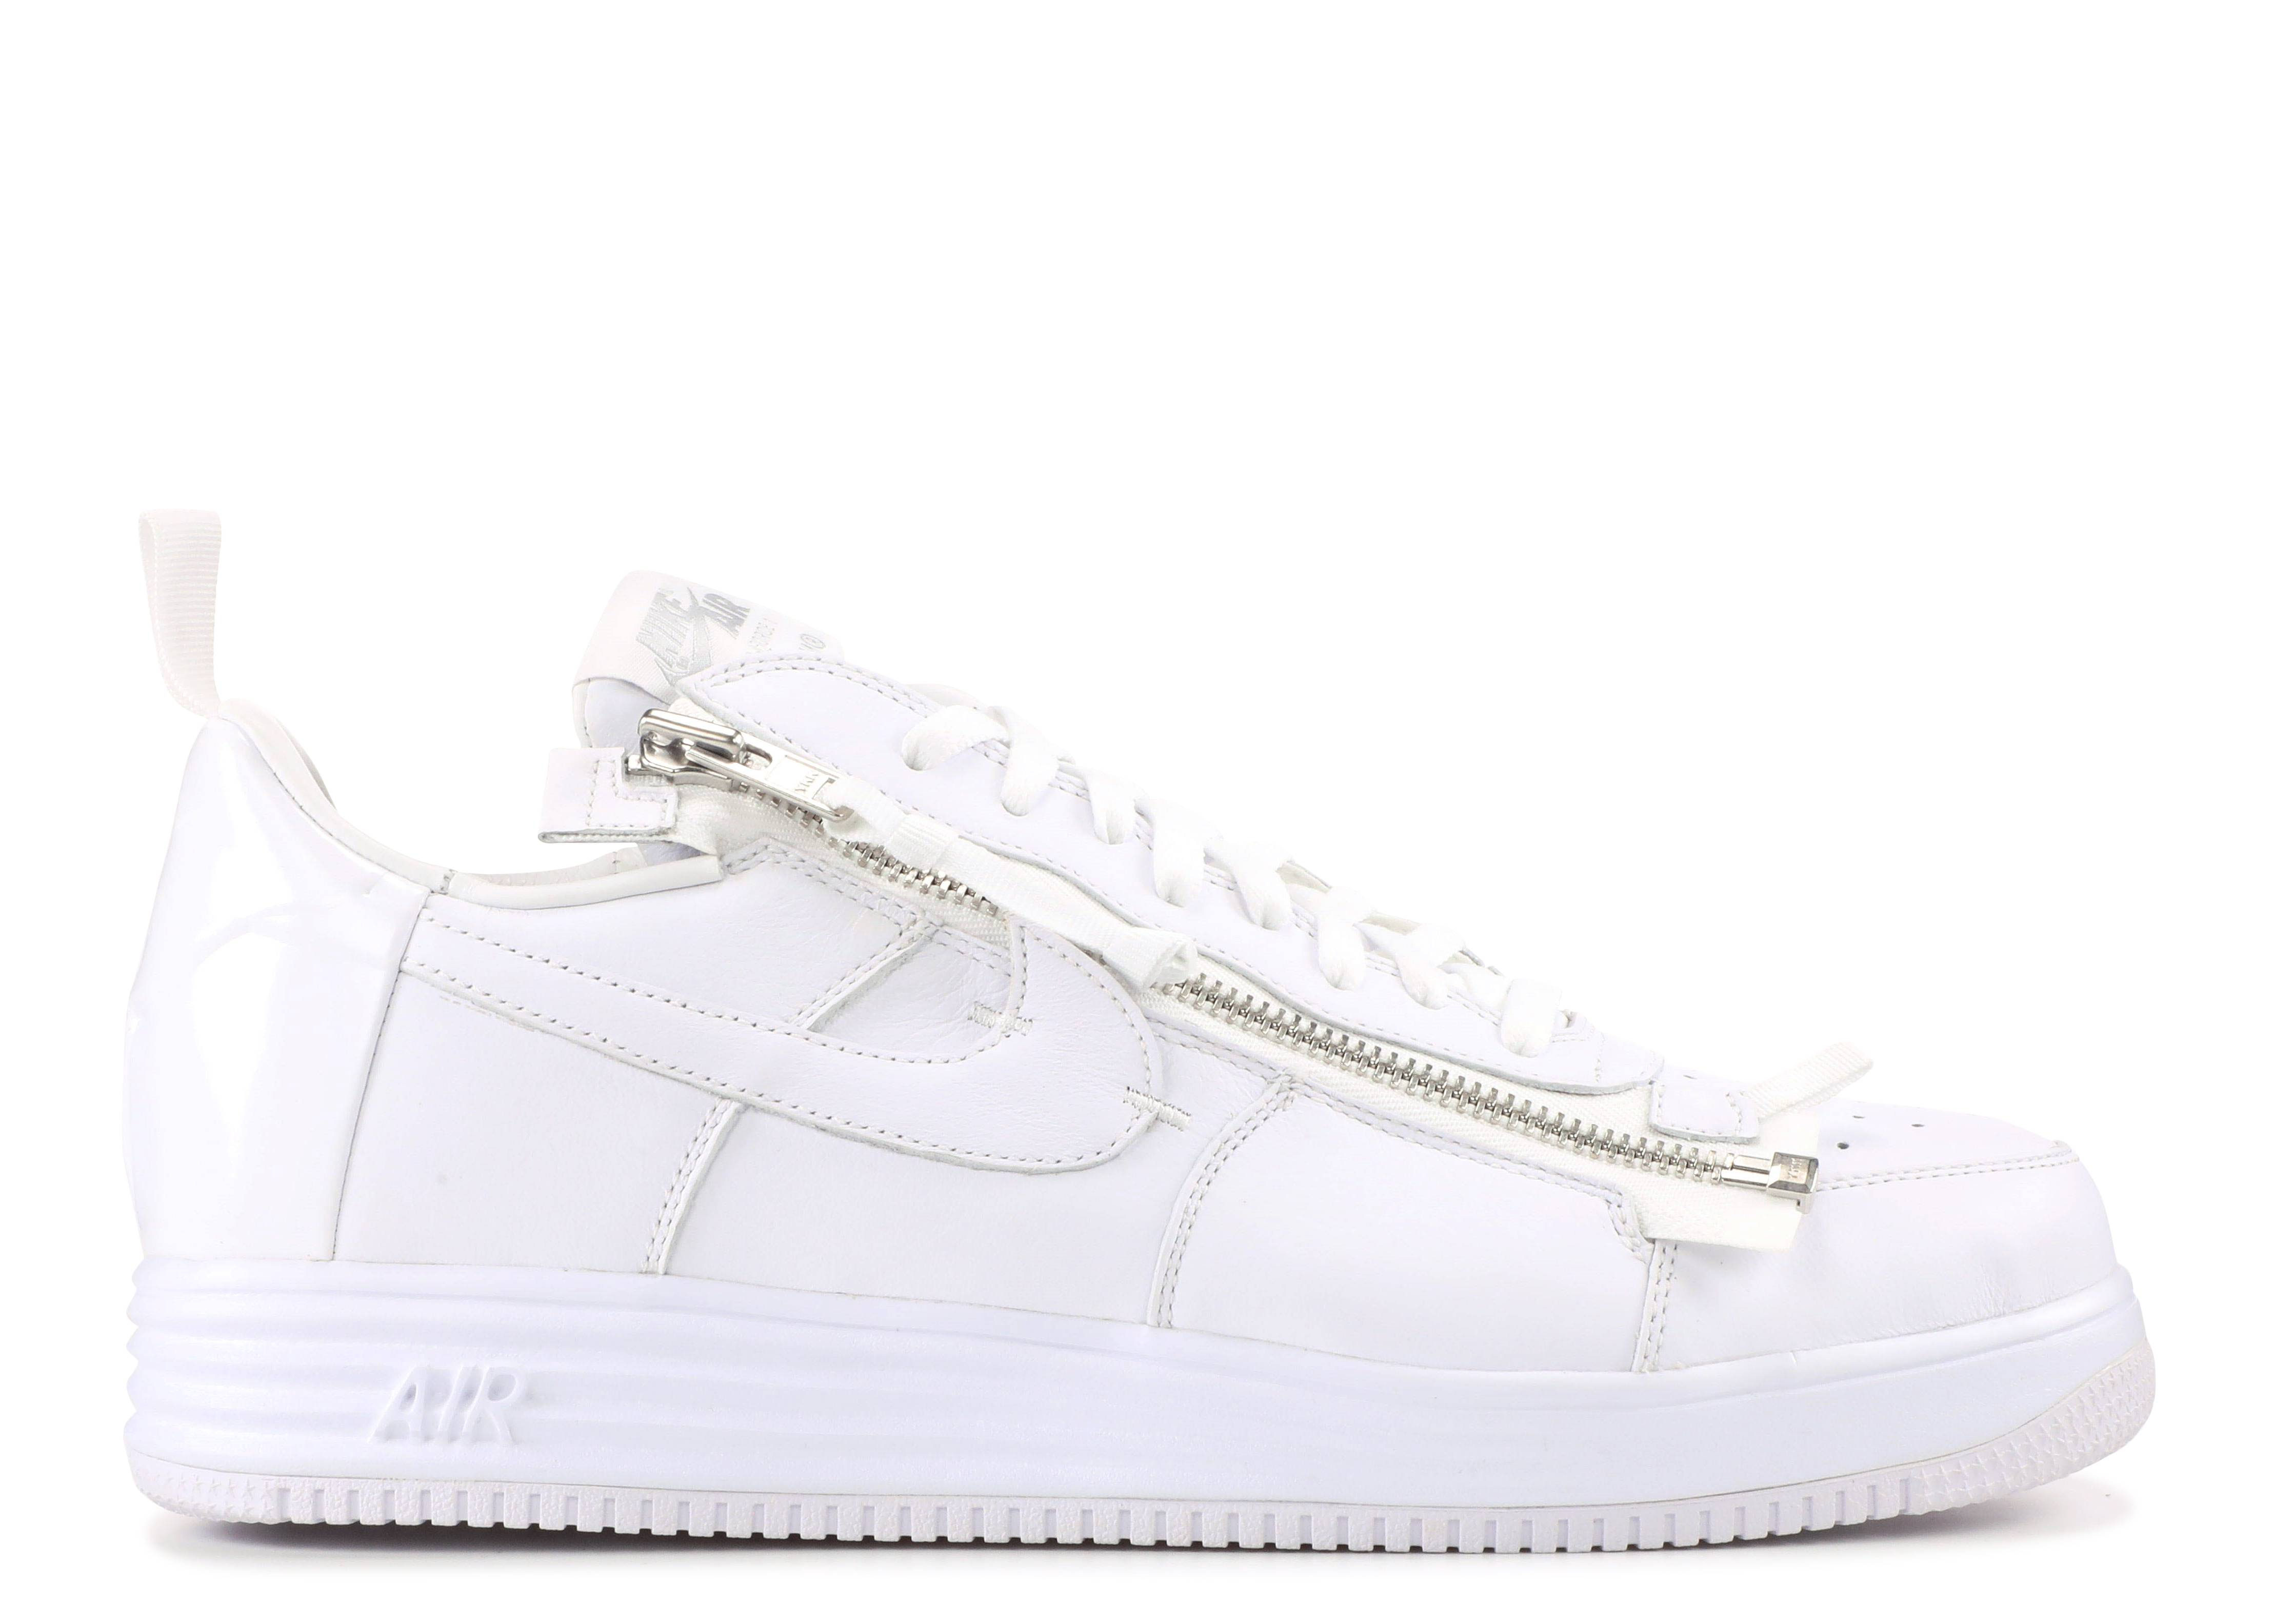 buy online abe7f da191 Lunar Force 1acronym 17